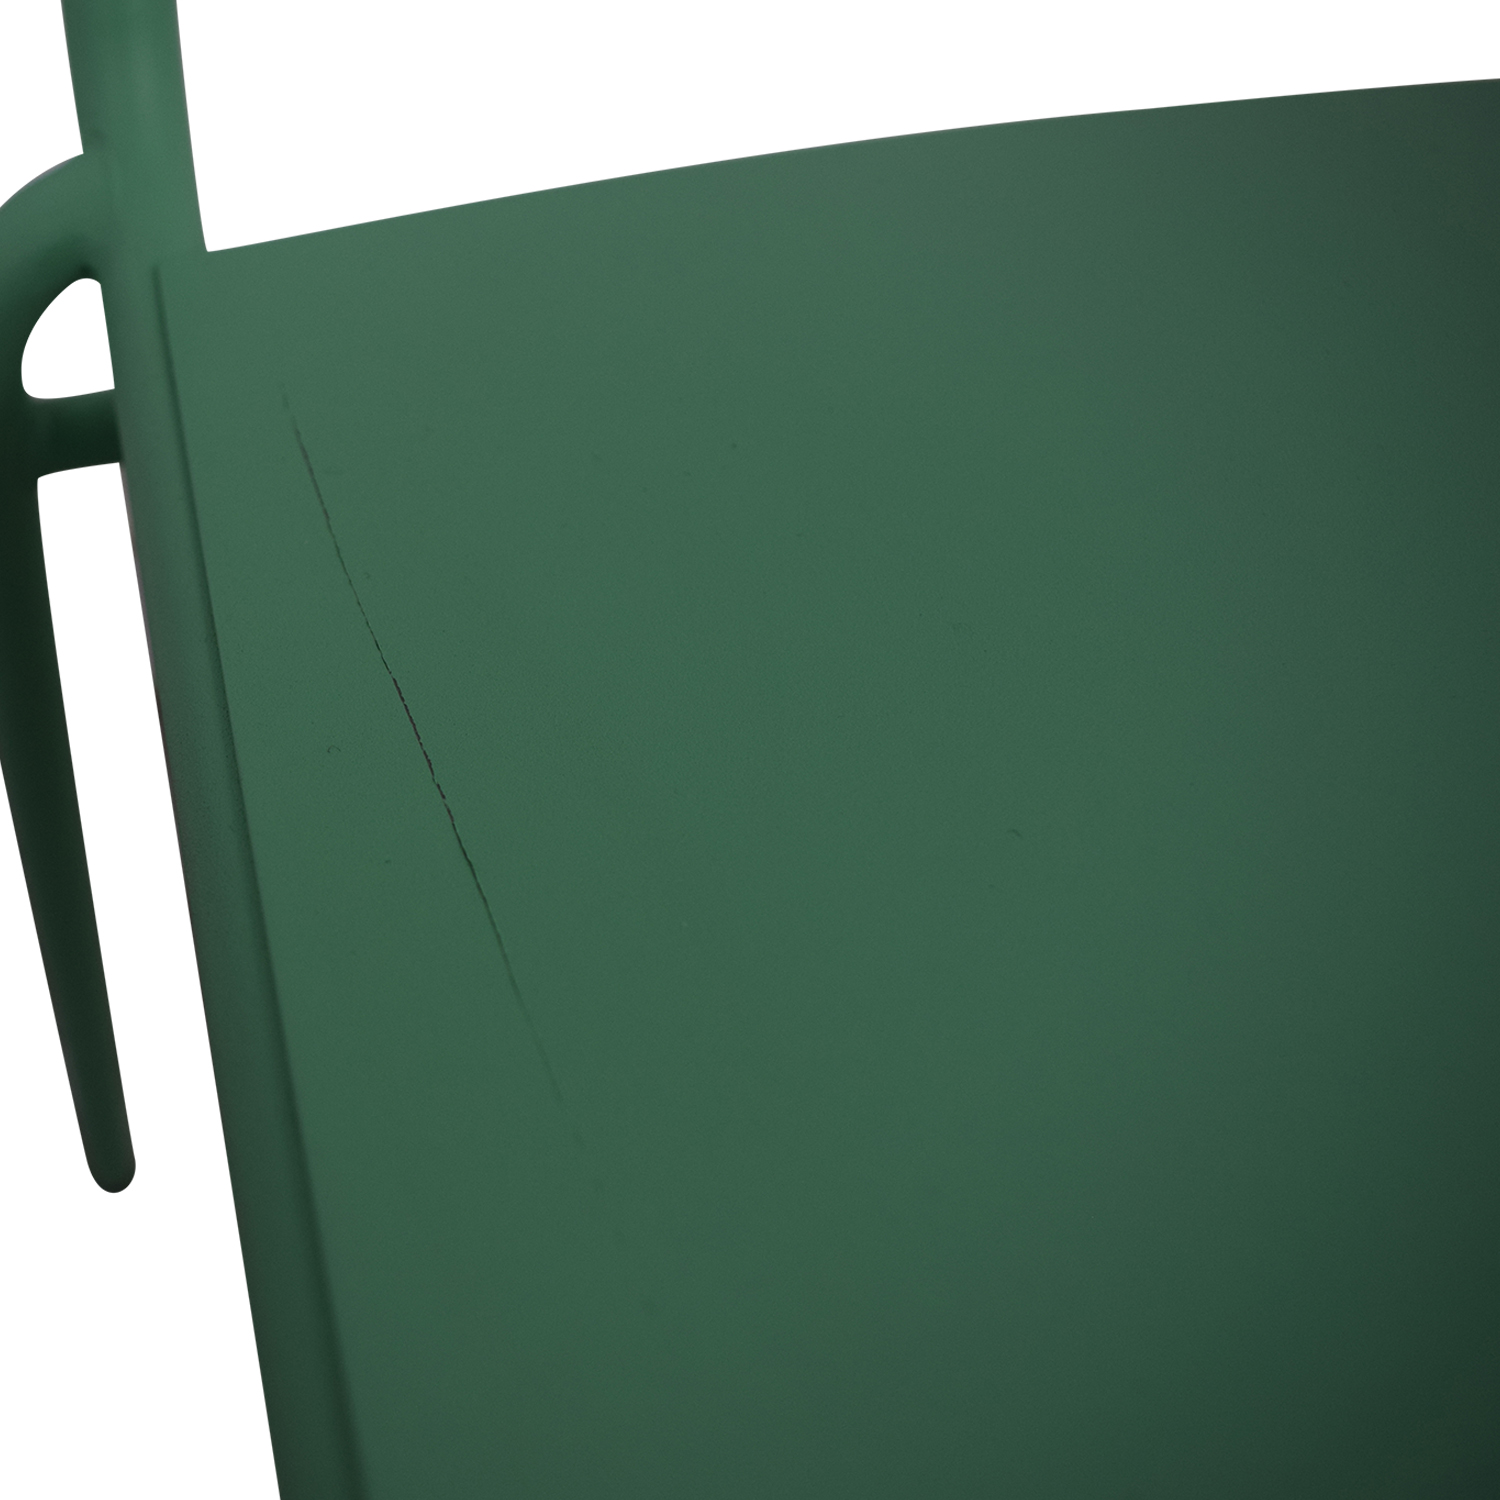 West Elm West Elm Lucinda Mint Green Dining Chairs on sale